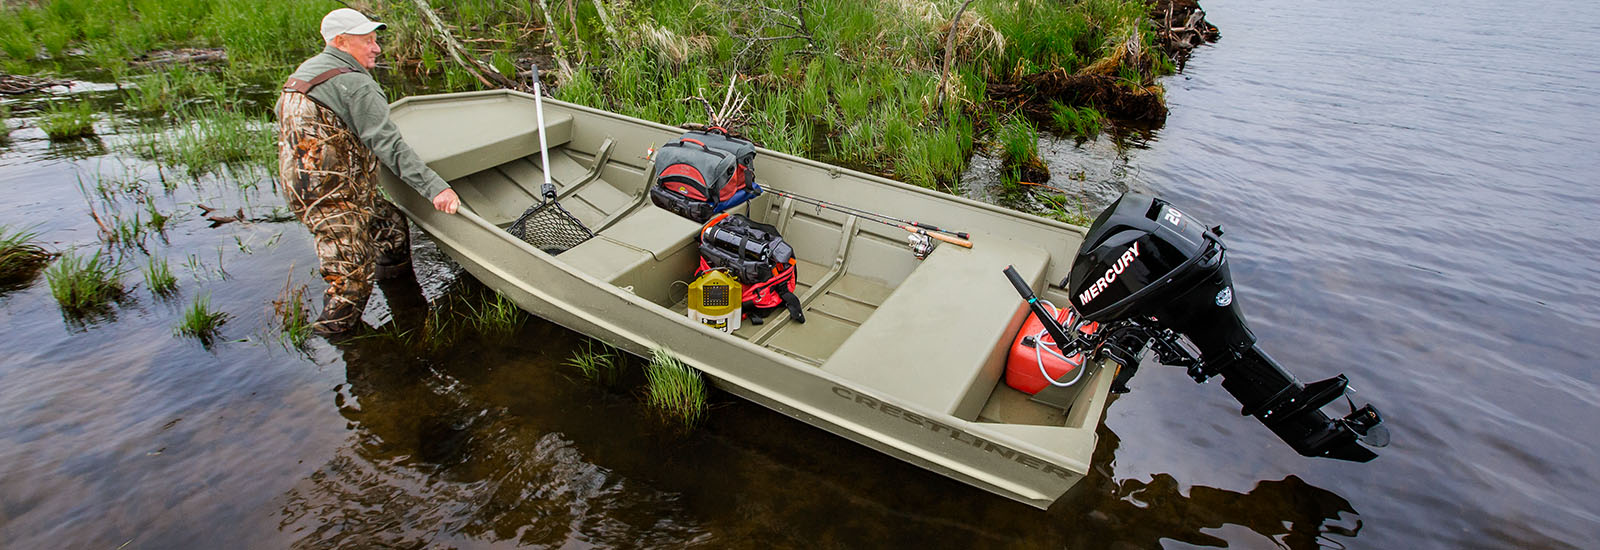 Crestliner cr jons aluminum utility jon boat built for for Fishing boat dealers near me